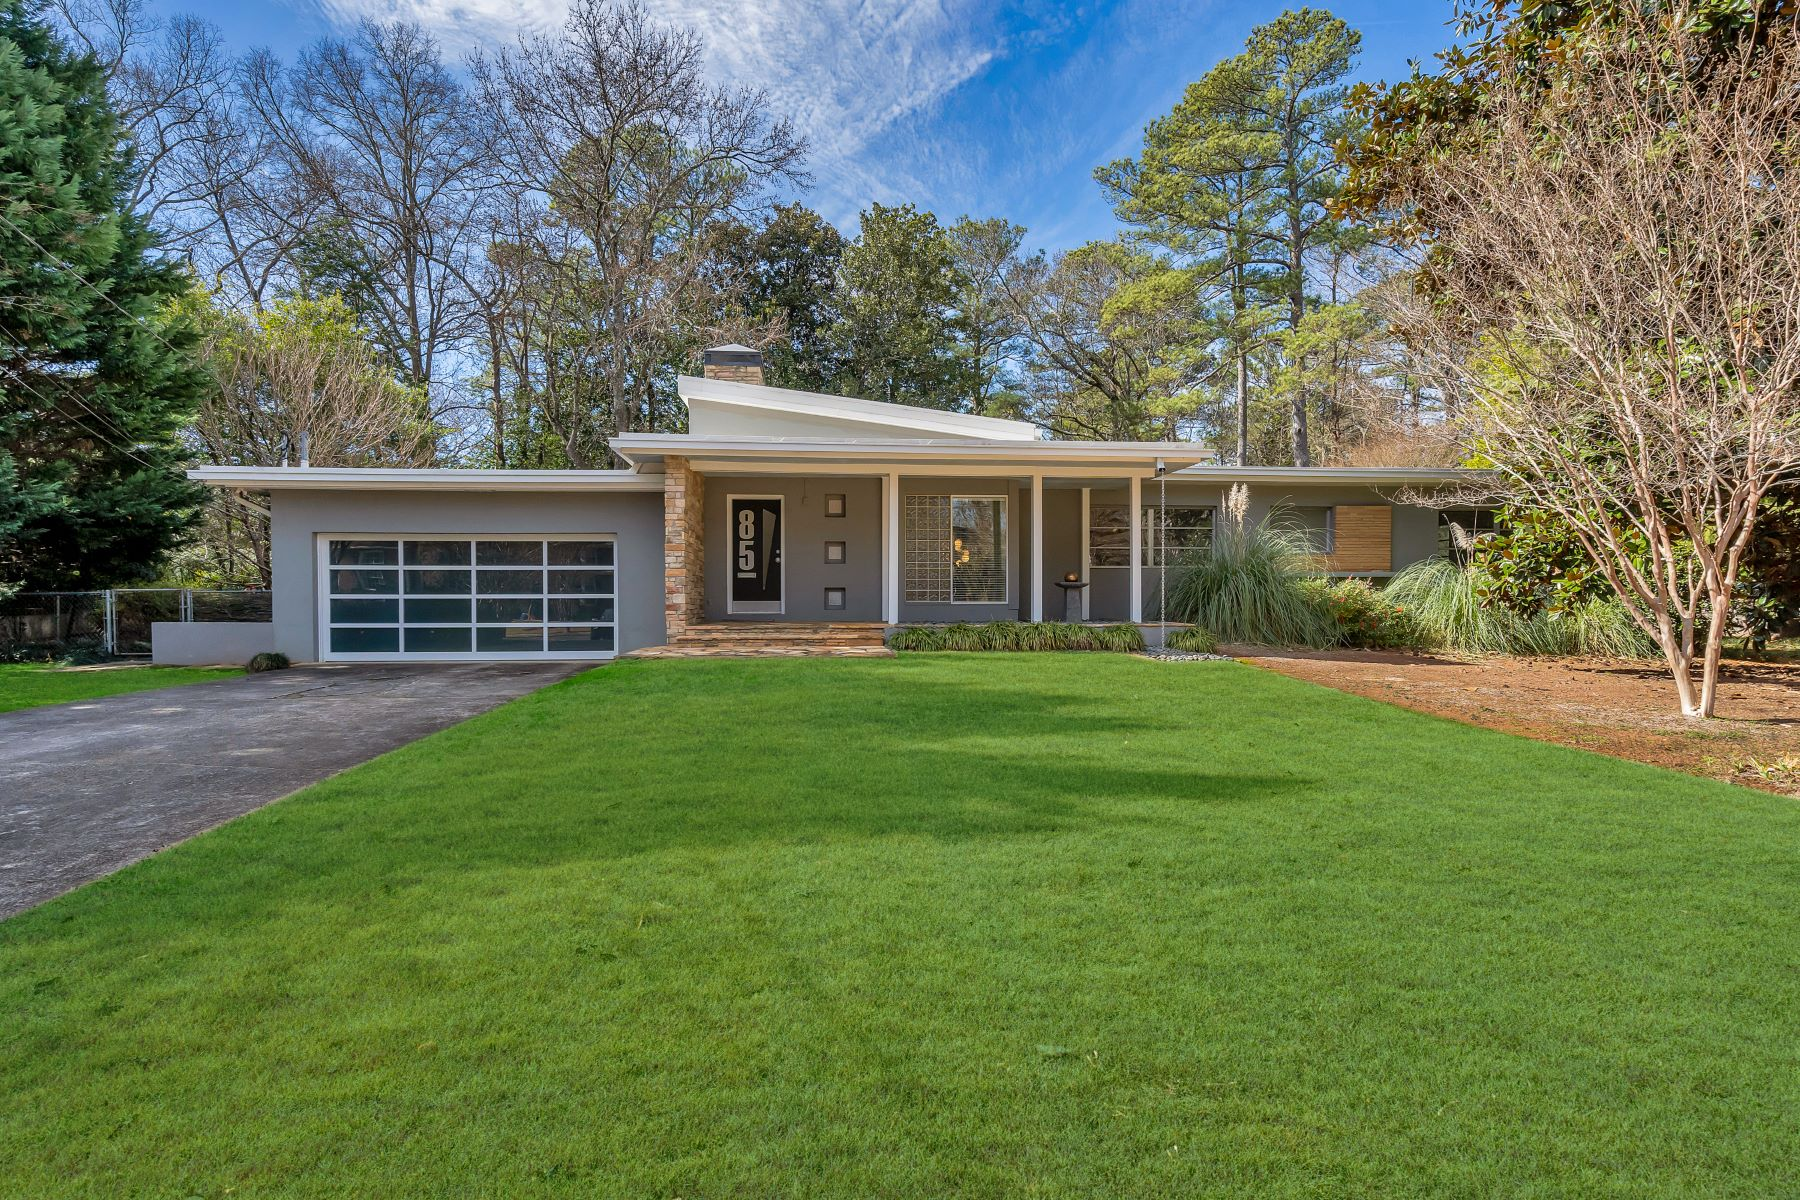 Single Family Homes for Active at Mid-Century Modern Masterpiece With Guest Cottage 85 Clarendon Avenue Avondale Estates, Georgia 30002 United States